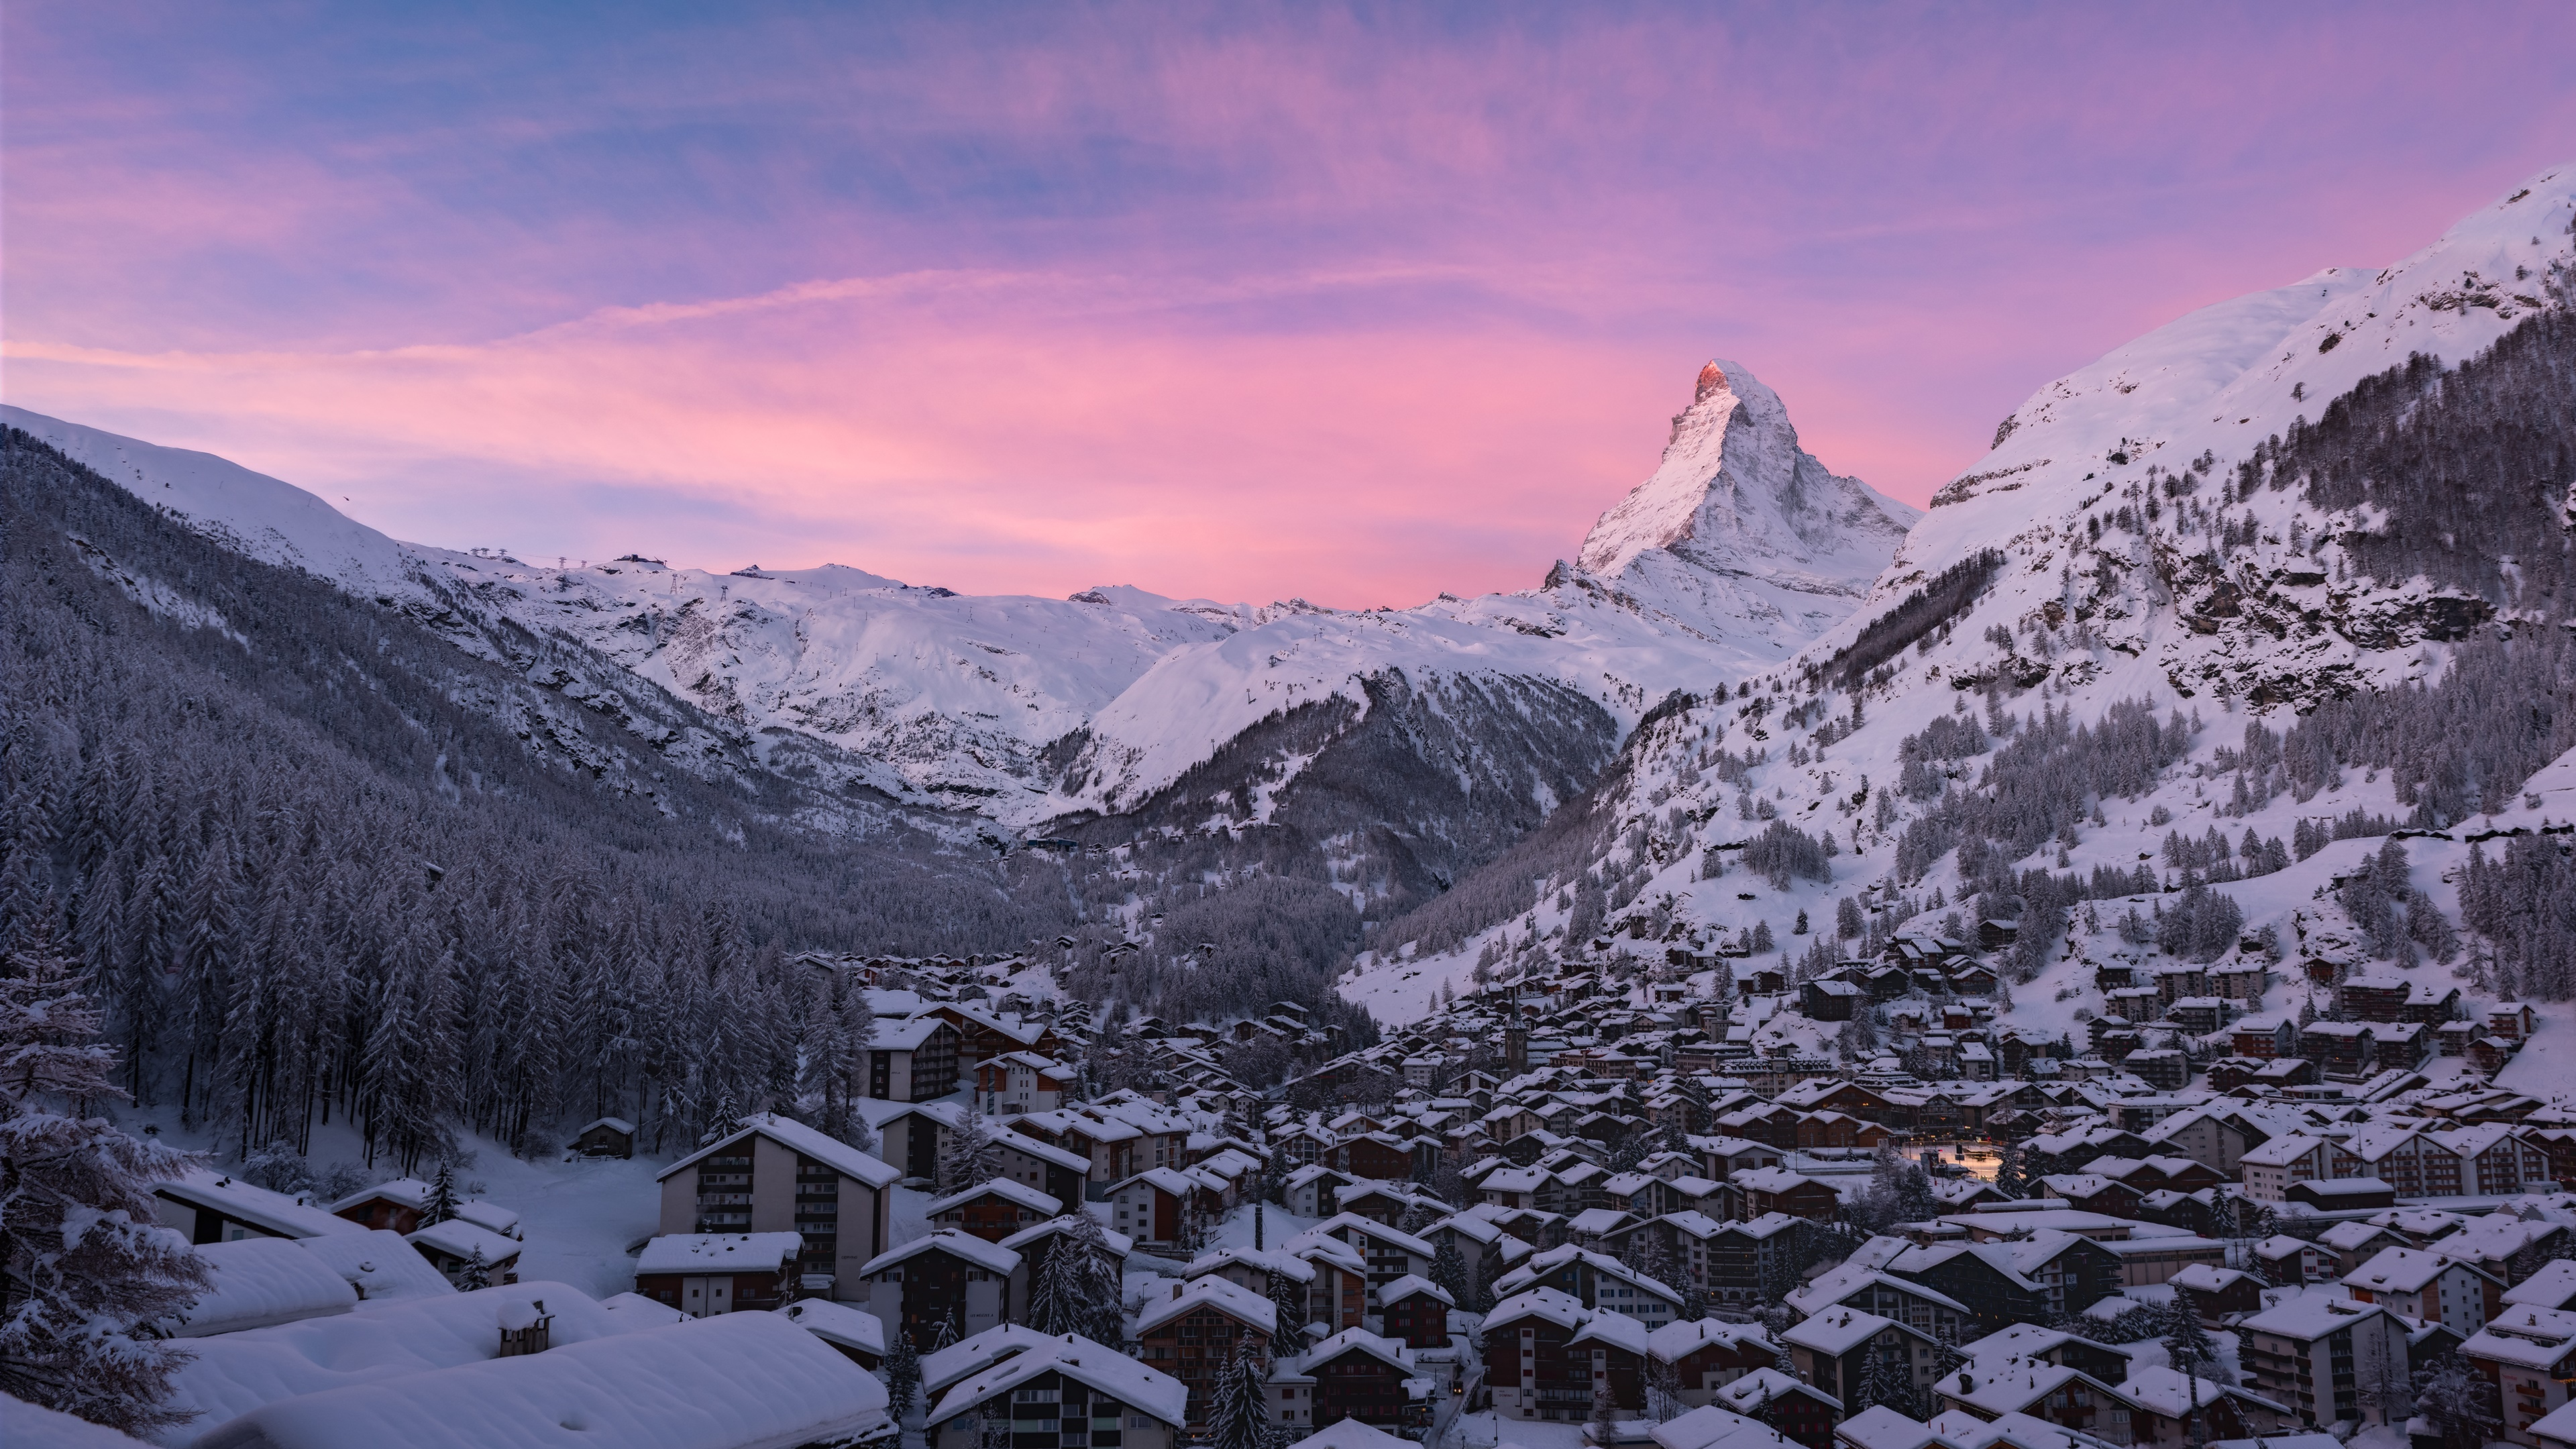 Matterhorn from Zermatt (Switzerland) wallpaper